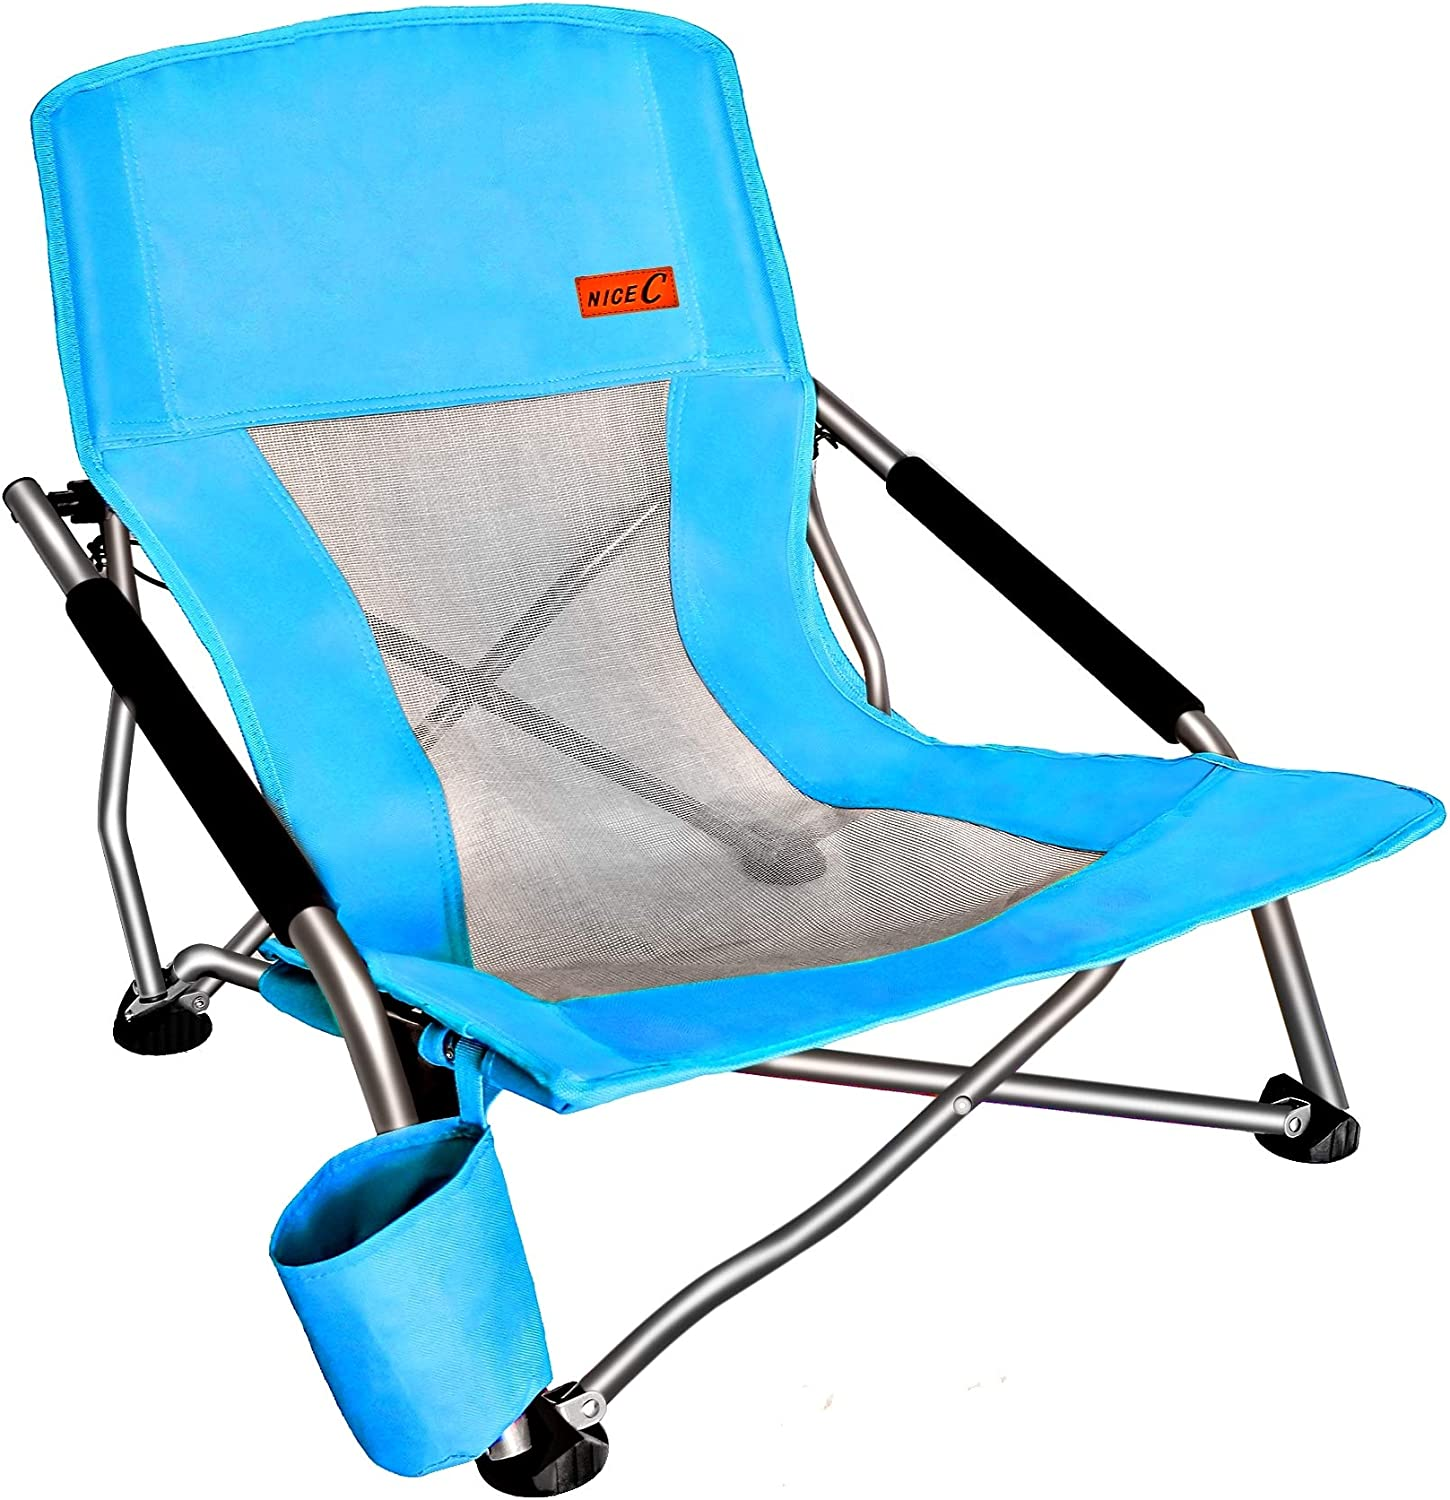 C Low Beach Camping Folding Chair